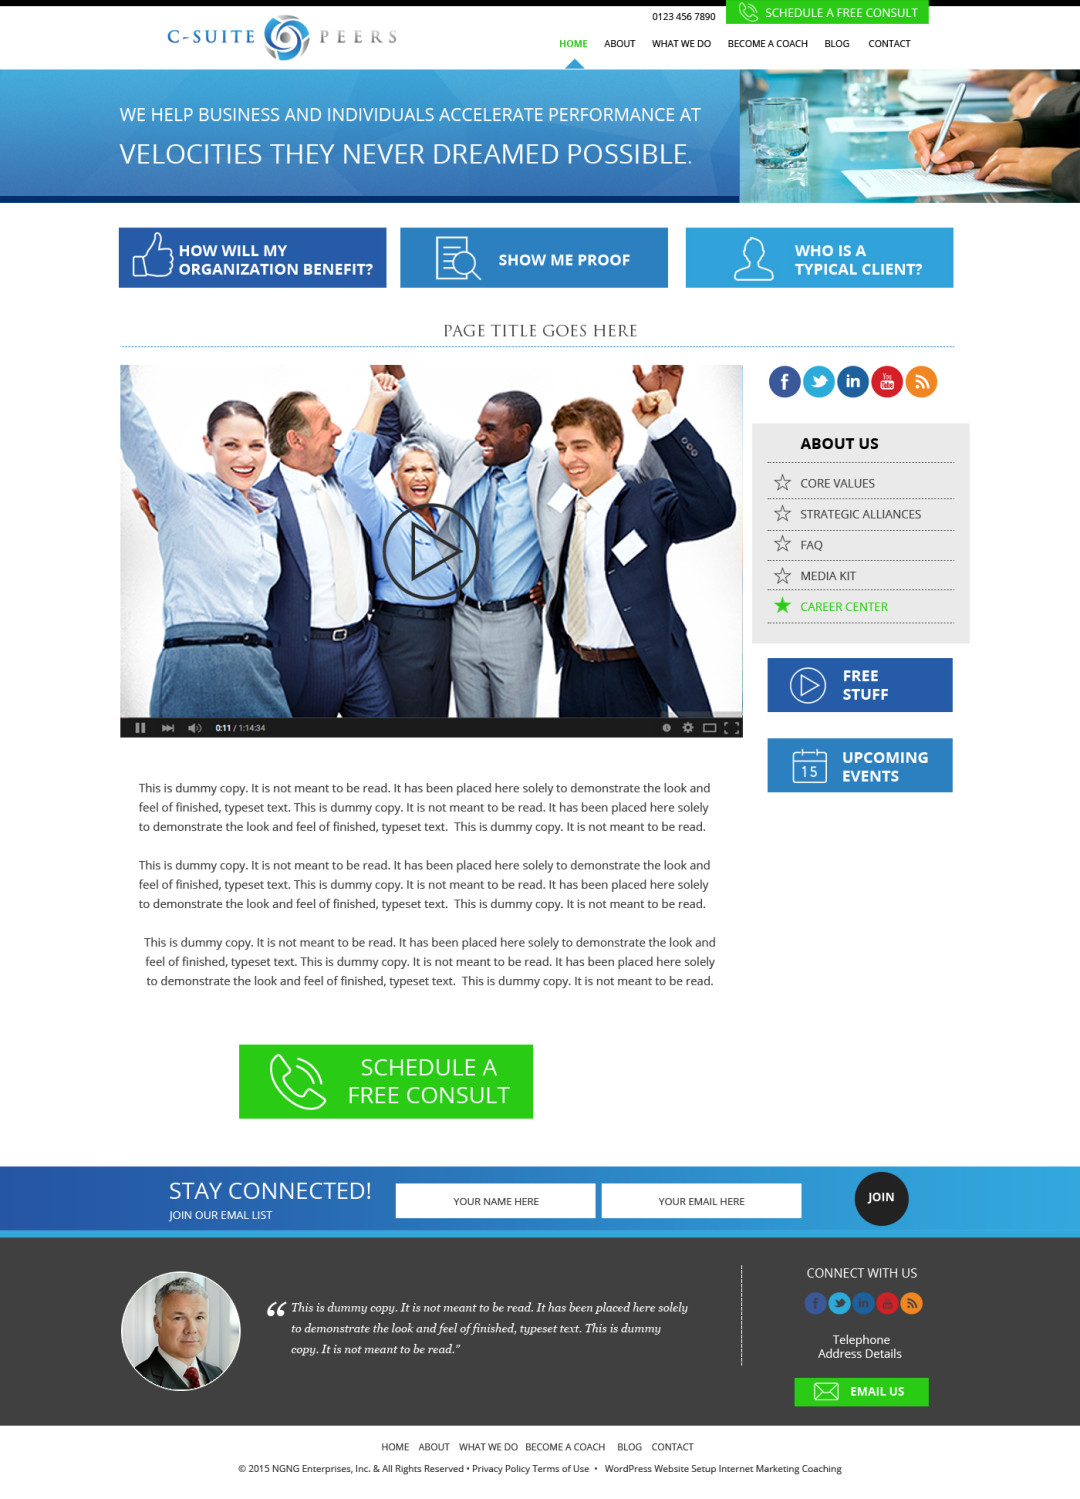 Custom Designed Wordpress Website for C-Suite Peers